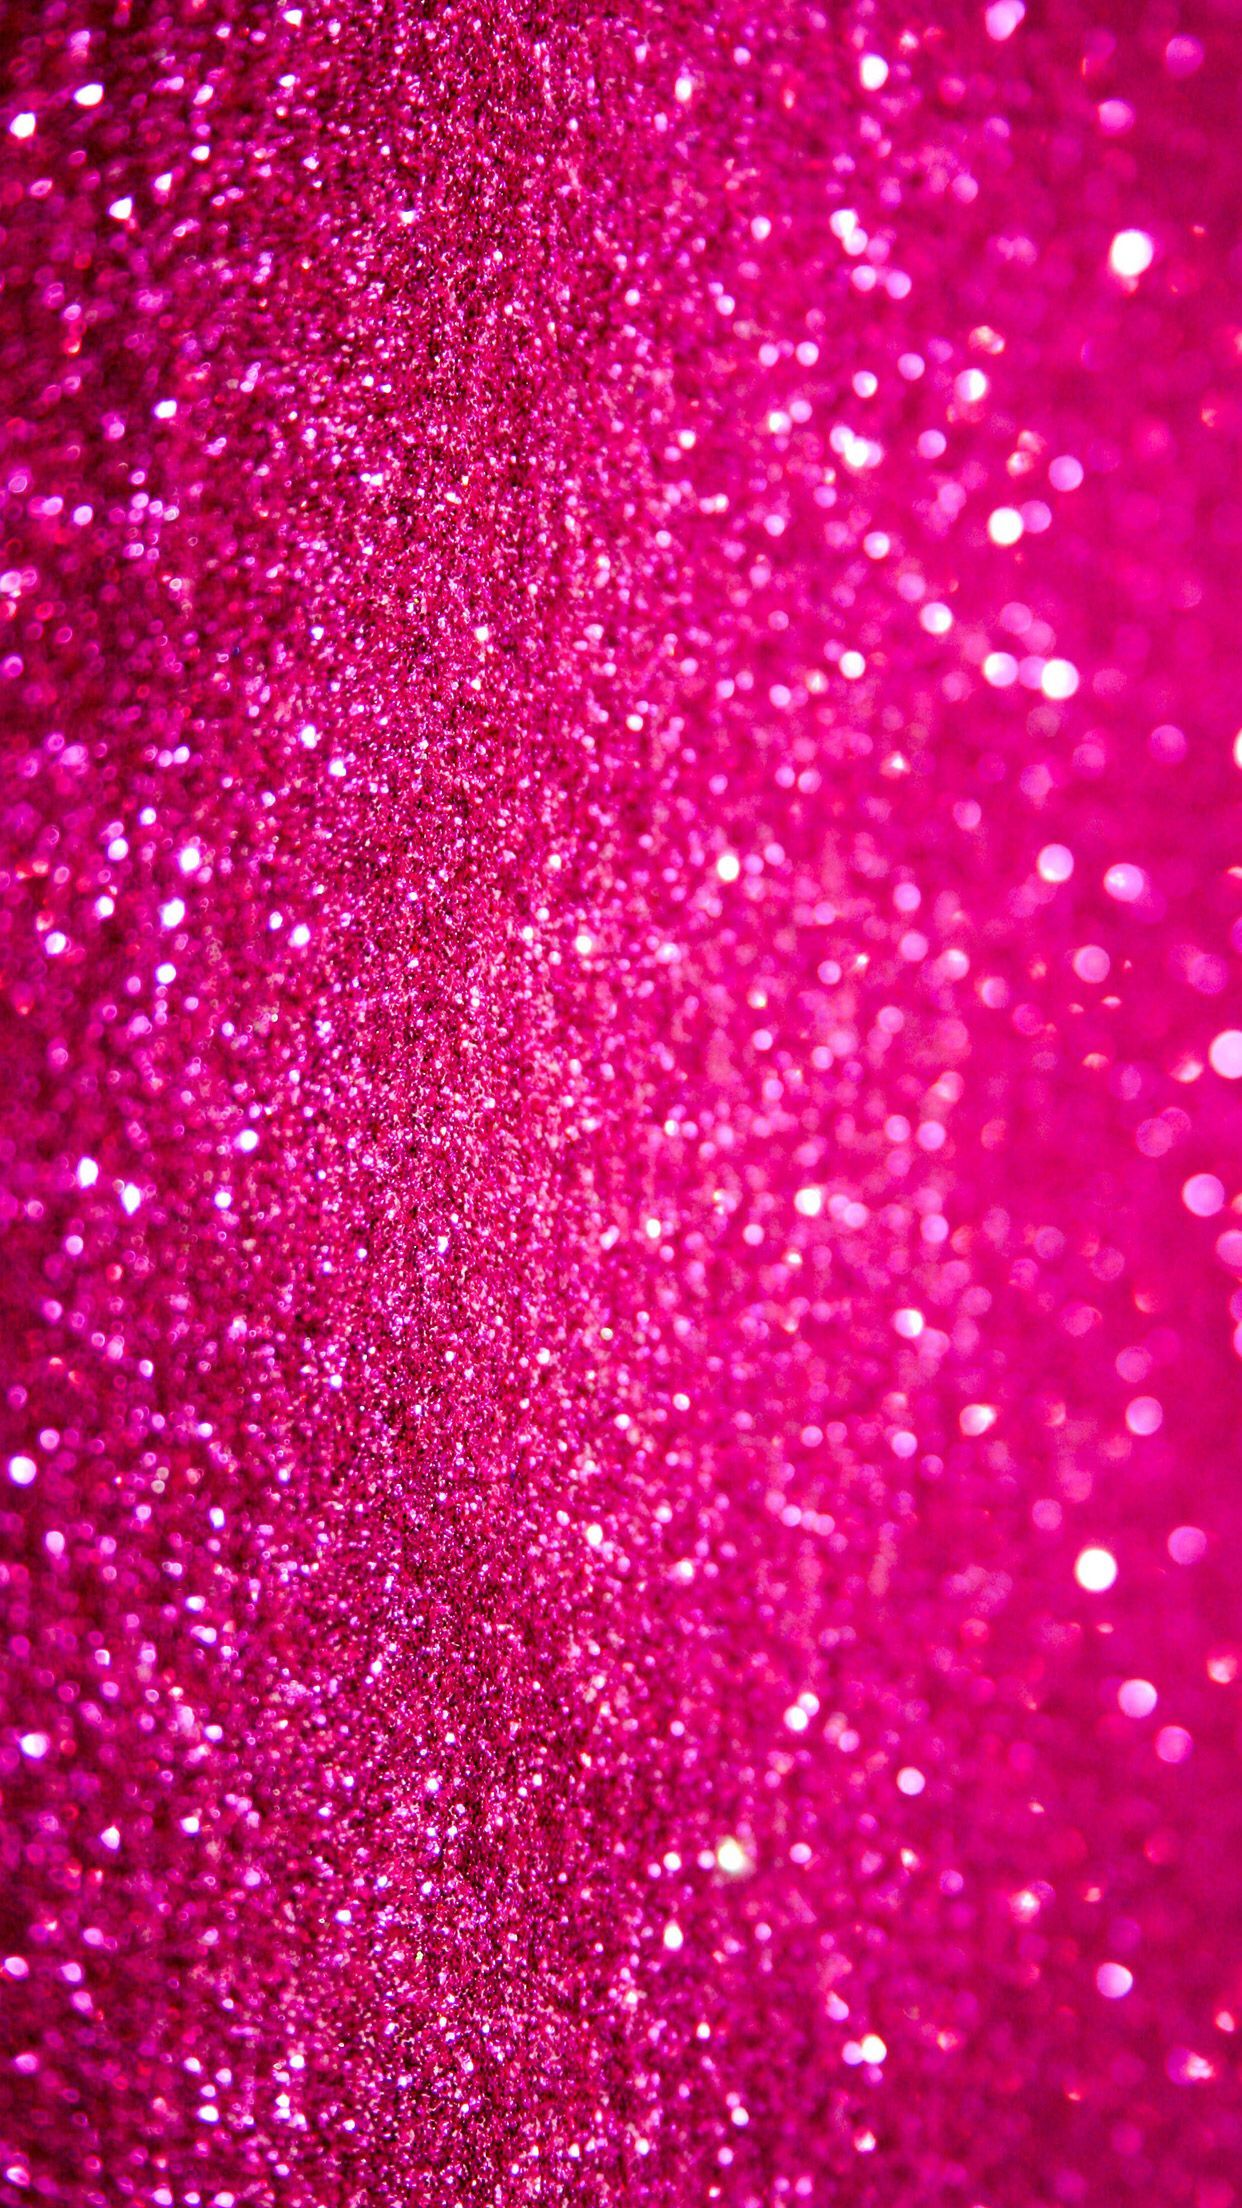 Stylish Pink Live Wallpapers Backgrounds Hd Quality Girly Theme Lock Screen Wallpaper In 2020 Pink Glitter Wallpaper Pink Wallpaper Iphone Pink Wallpaper